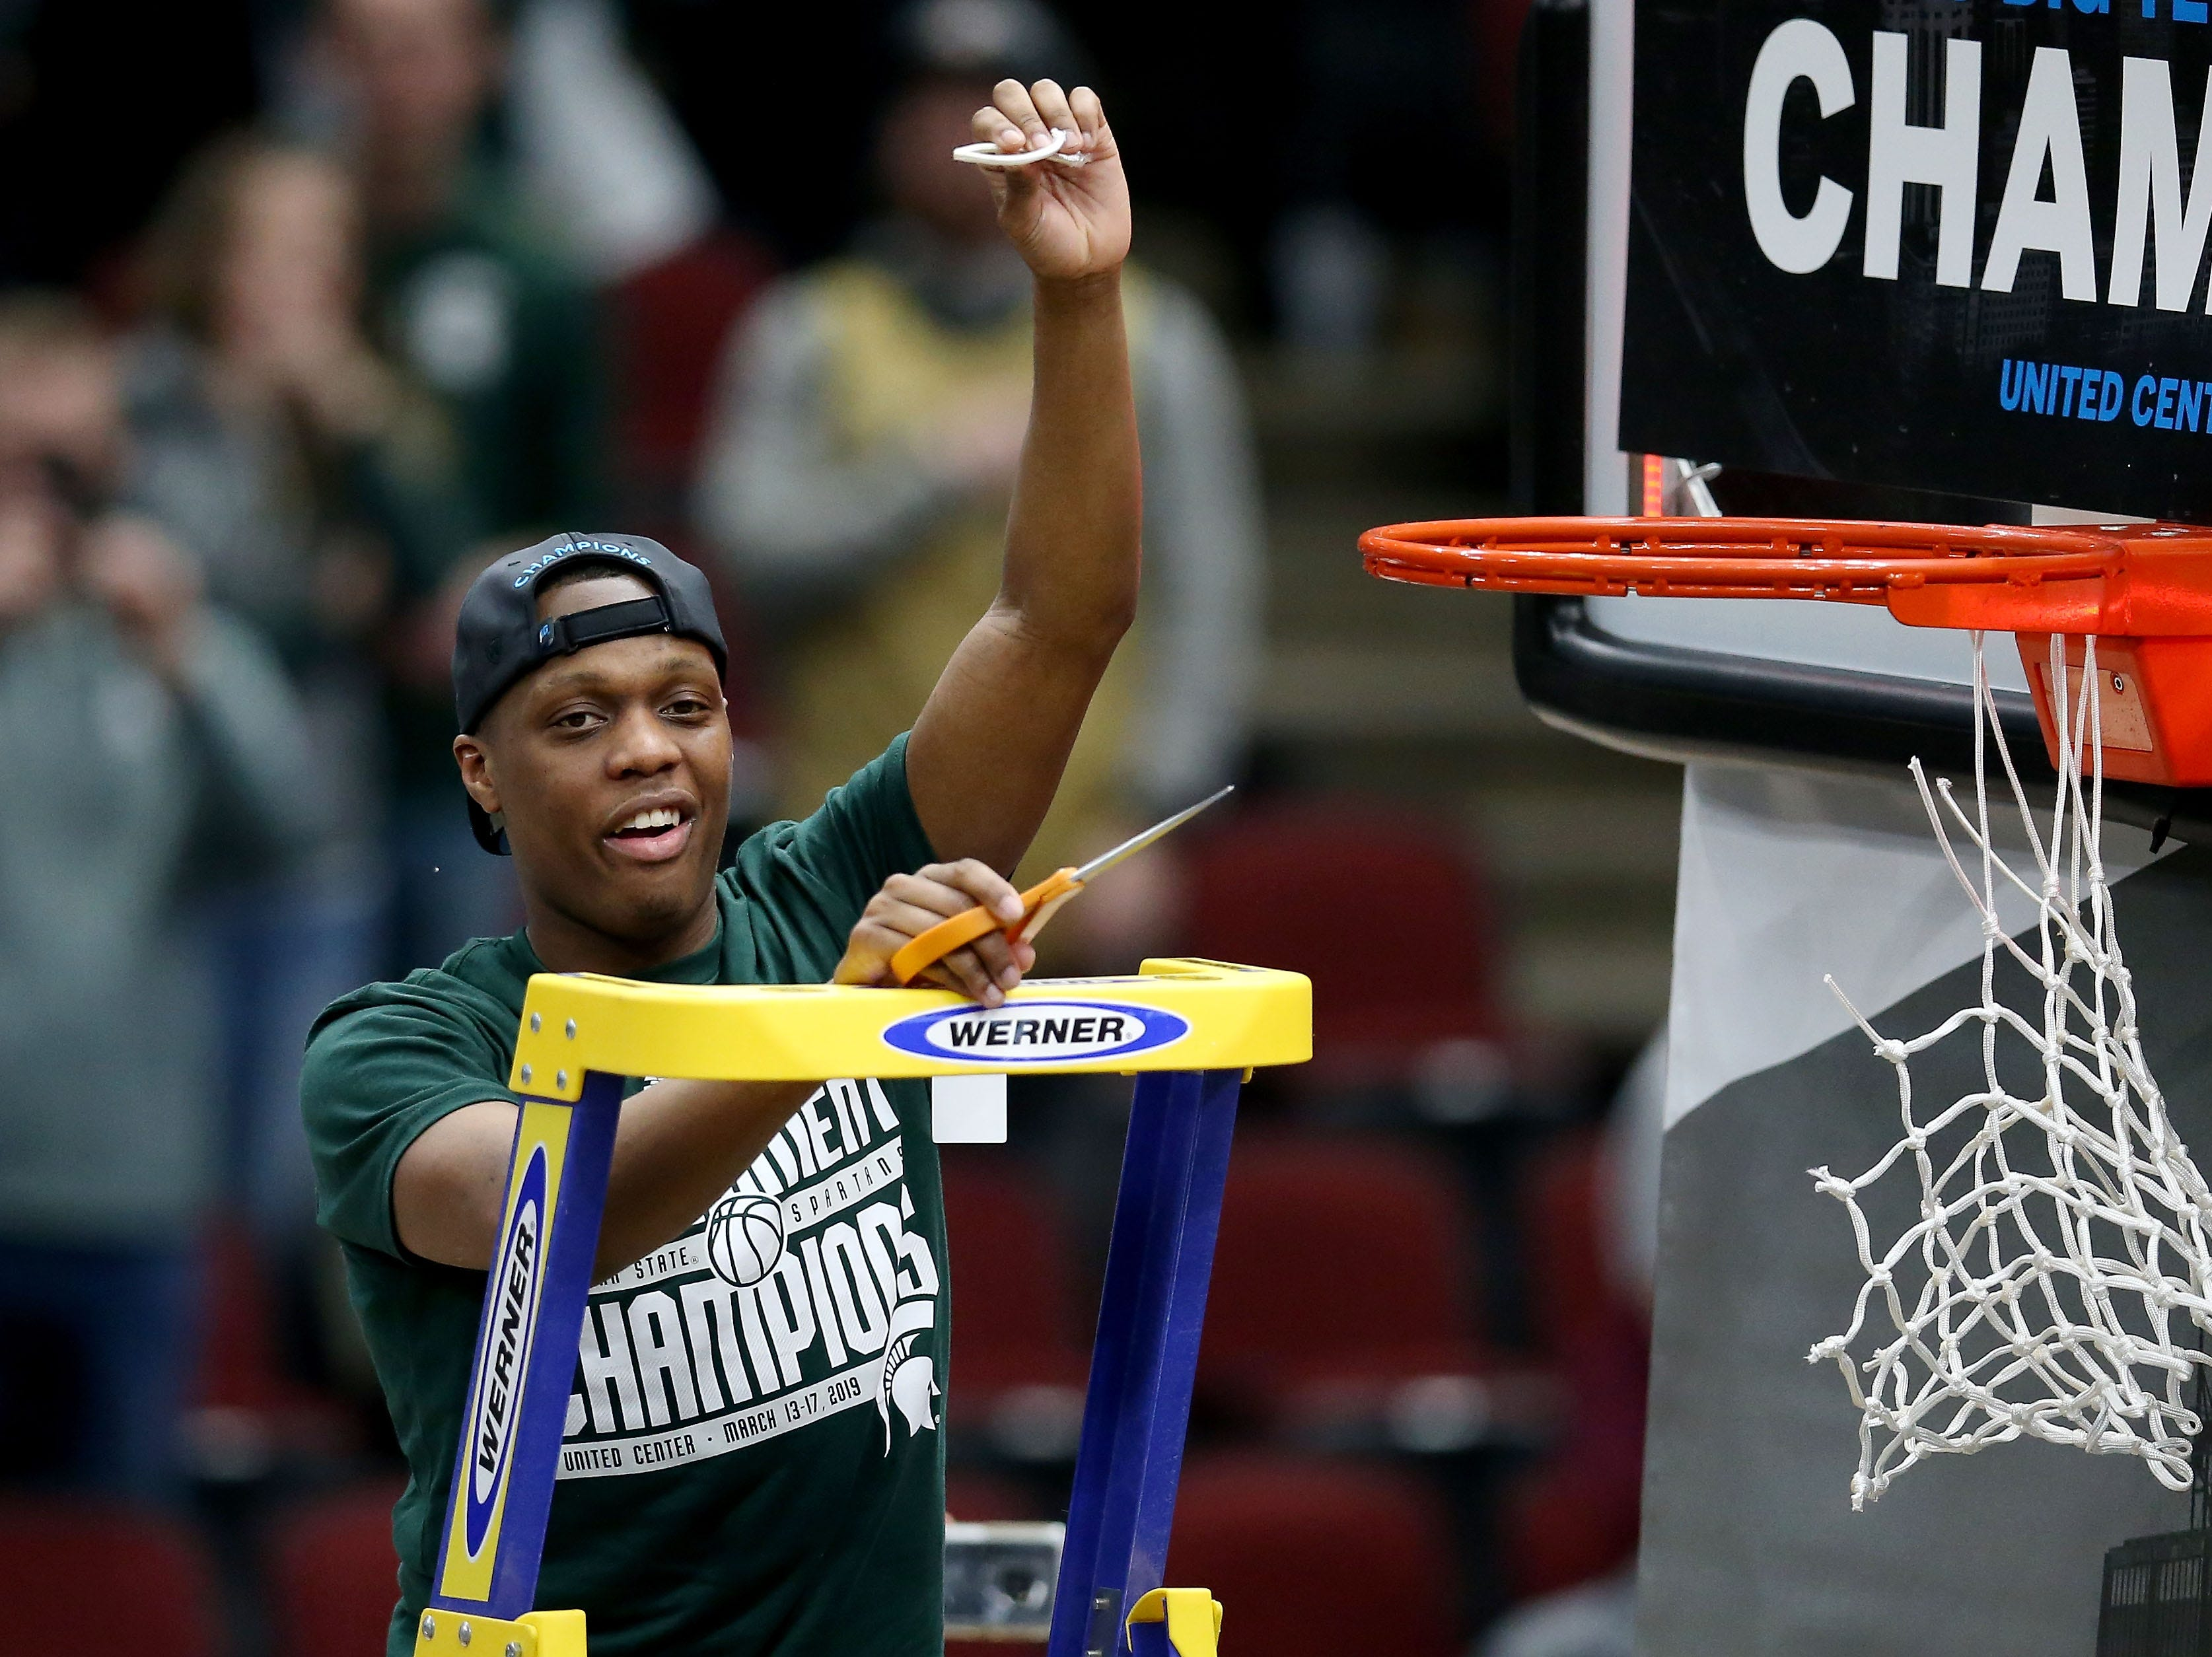 CHICAGO, ILLINOIS - MARCH 17:  Cassius Winston #5 of the Michigan State Spartans cuts down the net after beating the Michigan Wolverines 65-60 in the championship game of the Big Ten Basketball Tournament at the United Center on March 17, 2019 in Chicago, Illinois. (Photo by Dylan Buell/Getty Images)